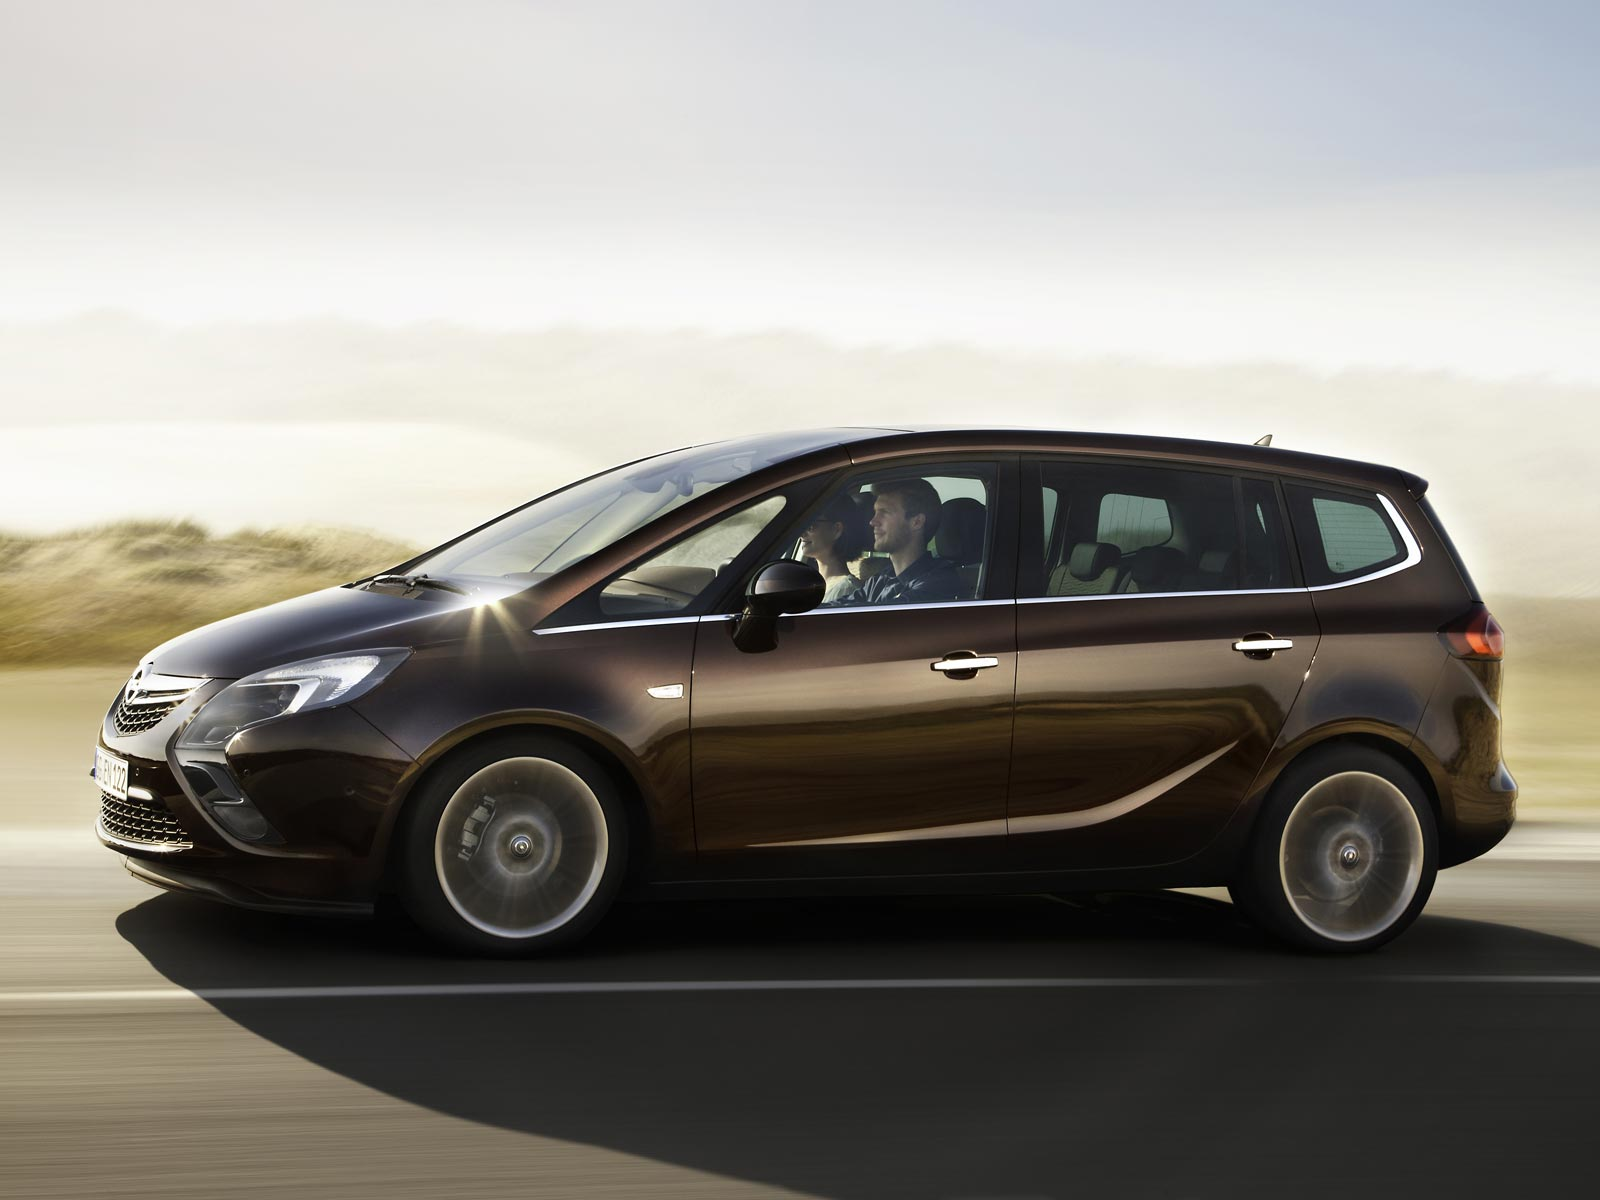 2019 Opel Zafira photo - 1